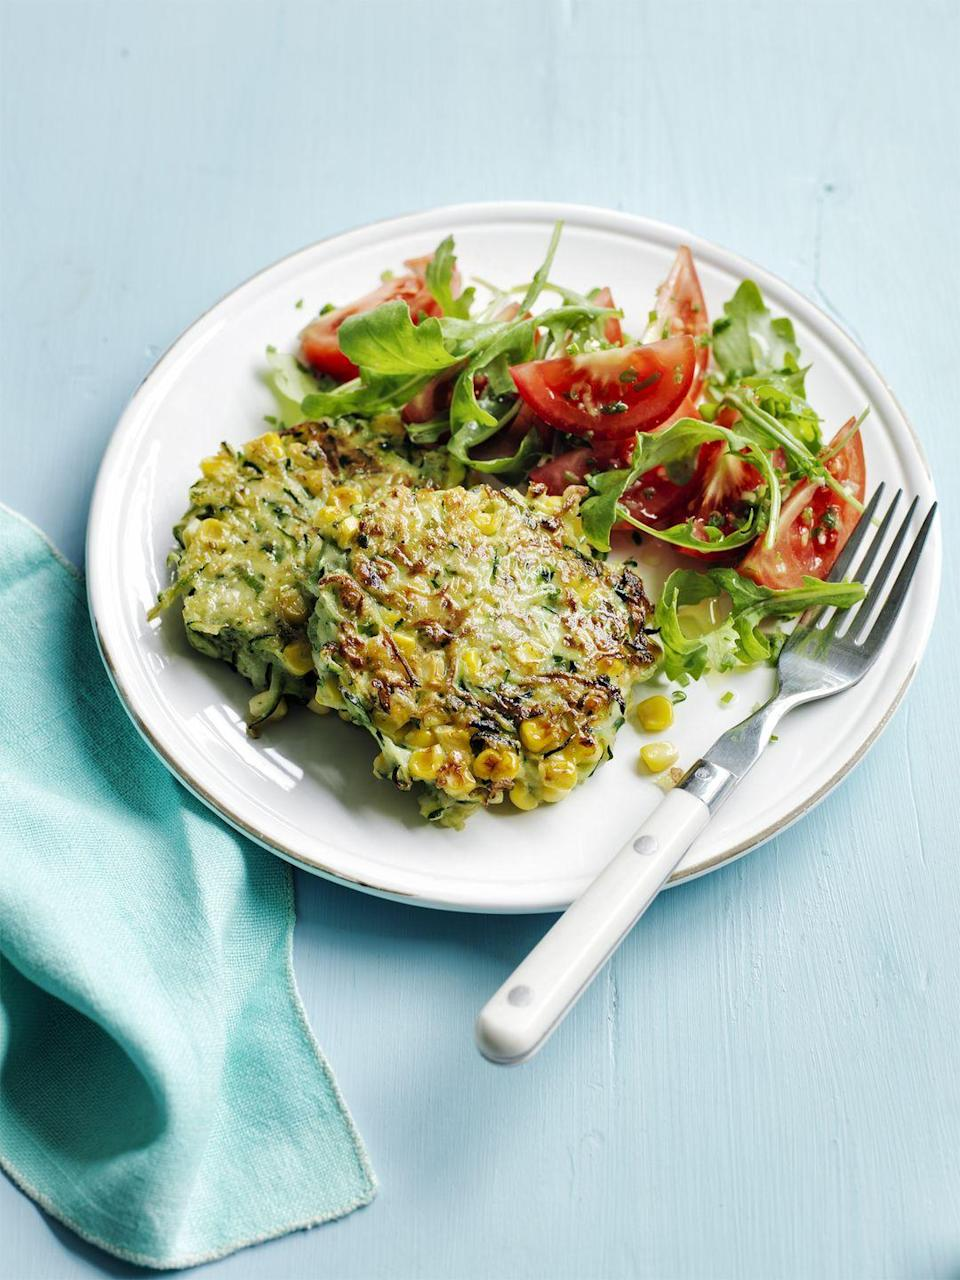 """<p>Fresh veggies are the stars of this meatless main, dressed in extra-virgin olive oil.</p><p><a href=""""https://www.womansday.com/food-recipes/food-drinks/recipes/a55356/corn-and-zucchini-fritters-recipe/"""" rel=""""nofollow noopener"""" target=""""_blank"""" data-ylk=""""slk:Get the Corn and Zucchini Fritters recipe."""" class=""""link rapid-noclick-resp""""><em>Get the Corn and Zucchini Fritters recipe.</em></a> </p>"""